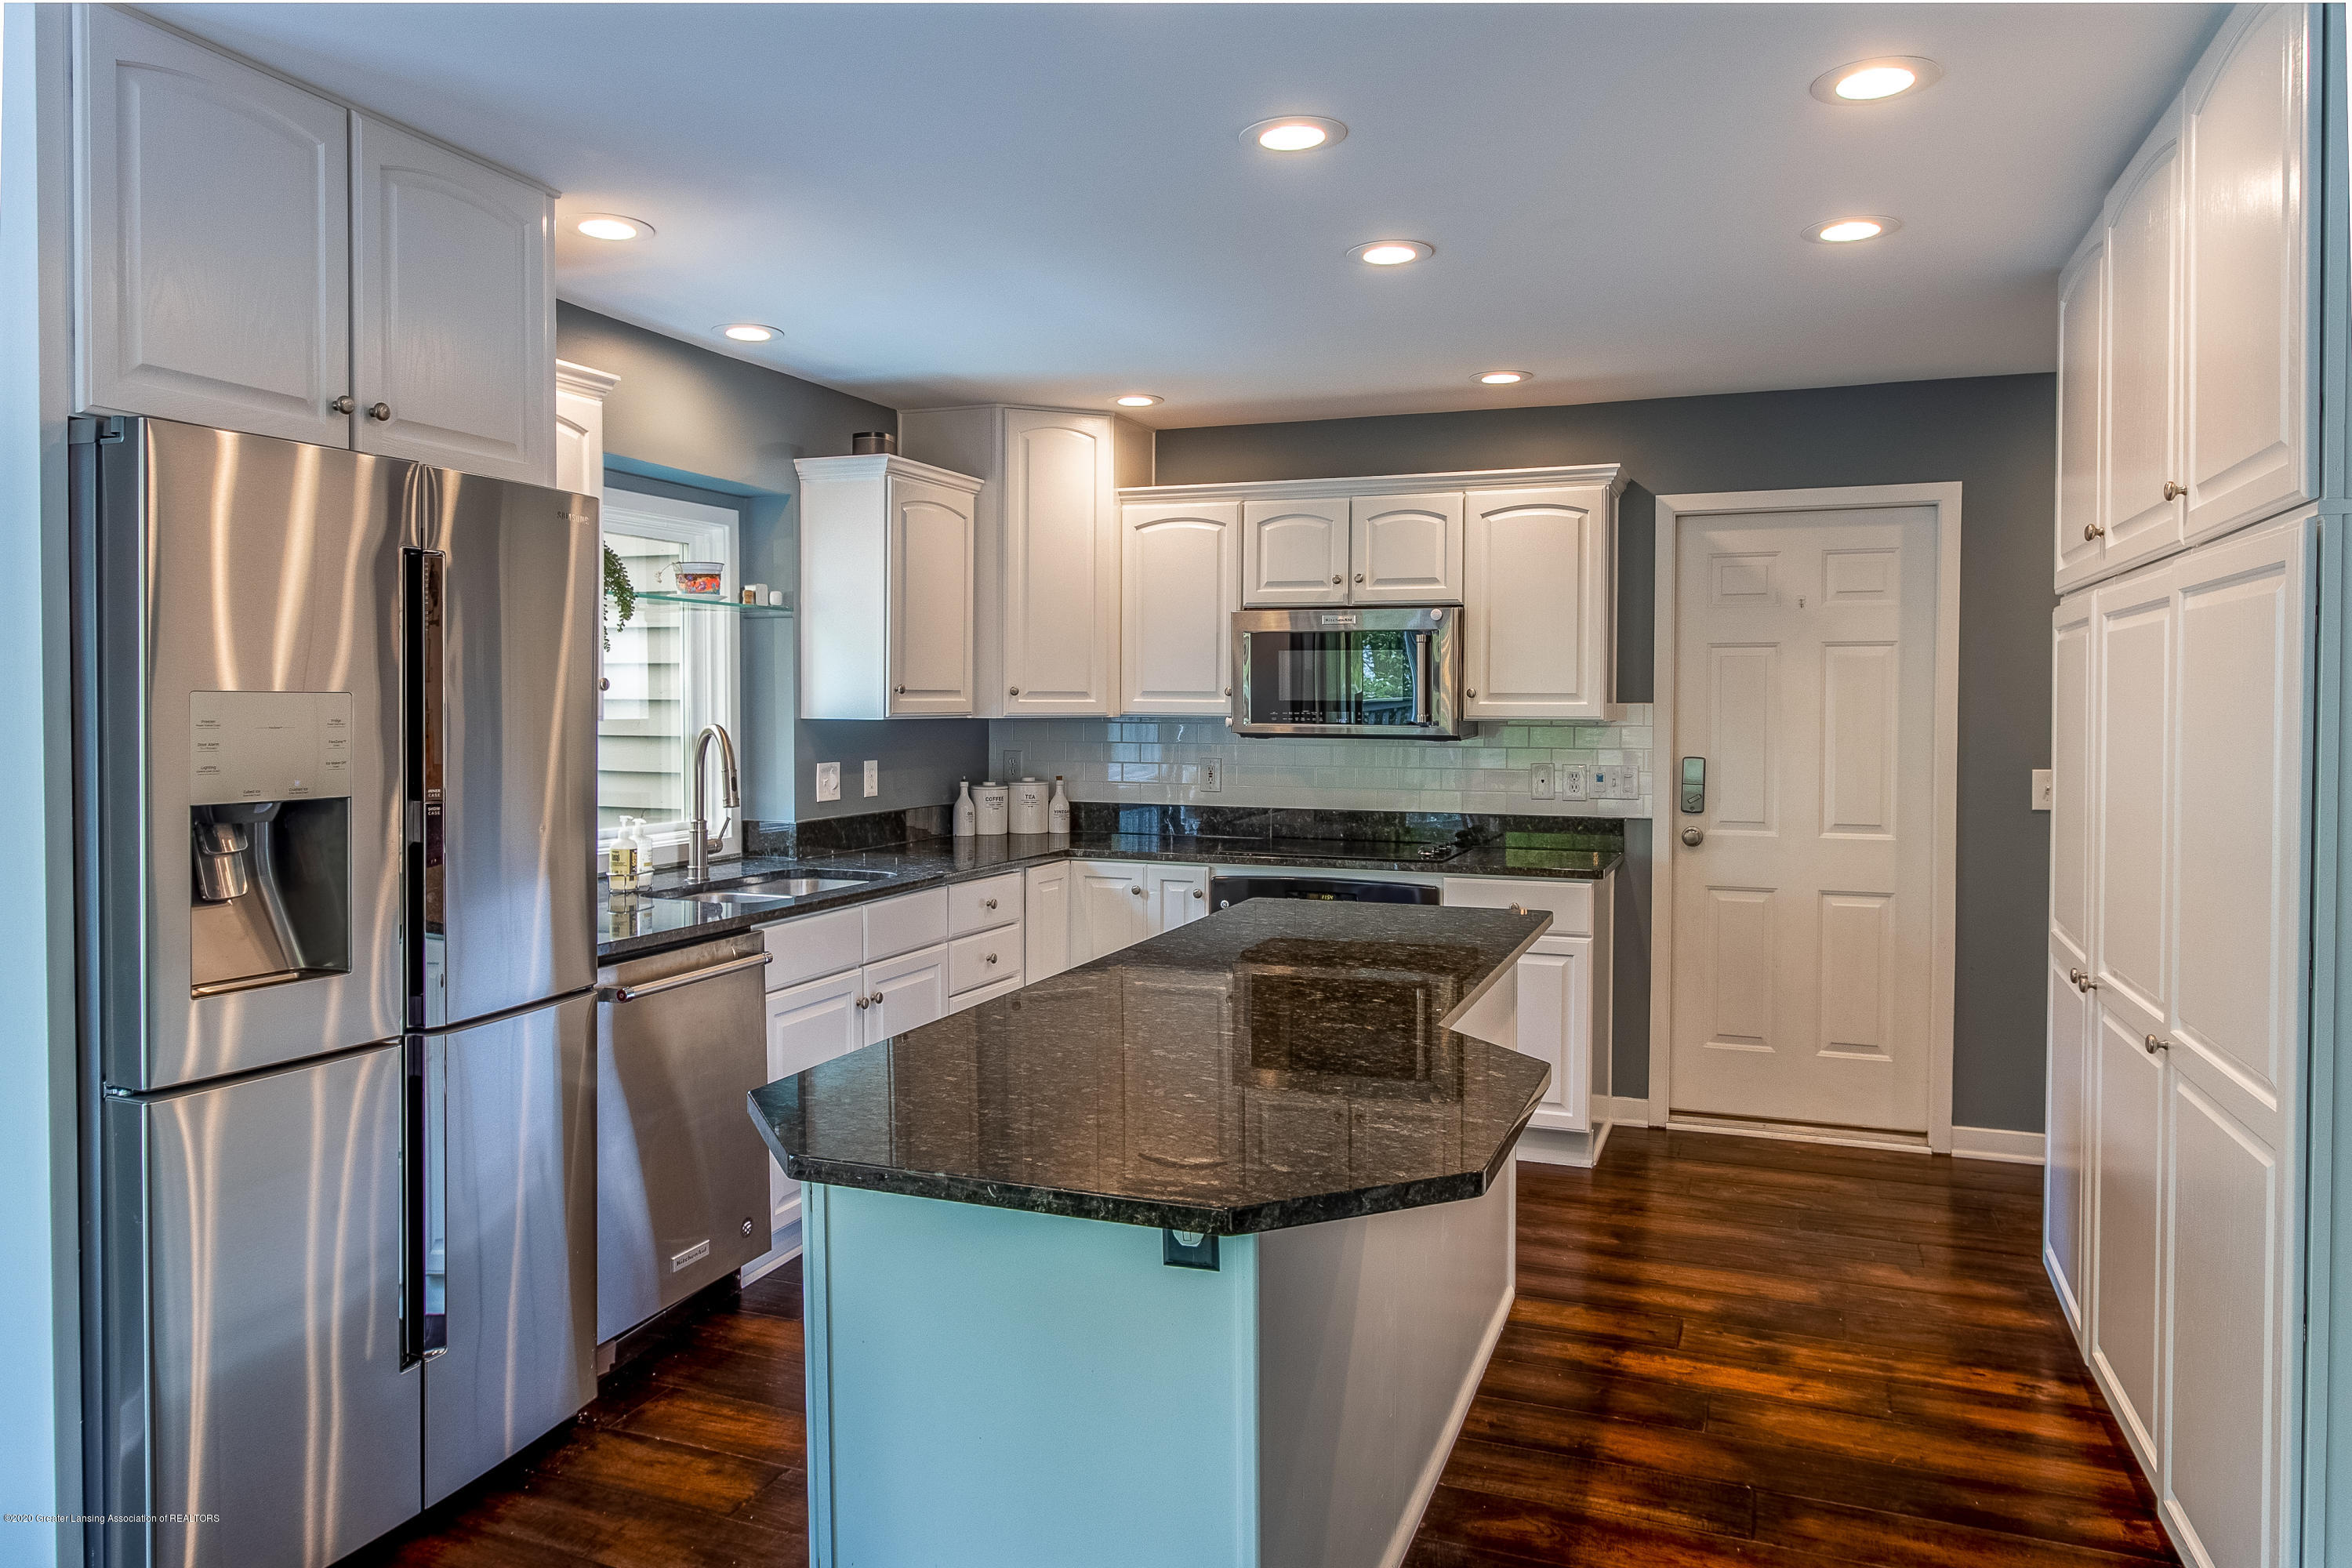 3668 Fairhills Dr - Kitchen - 39